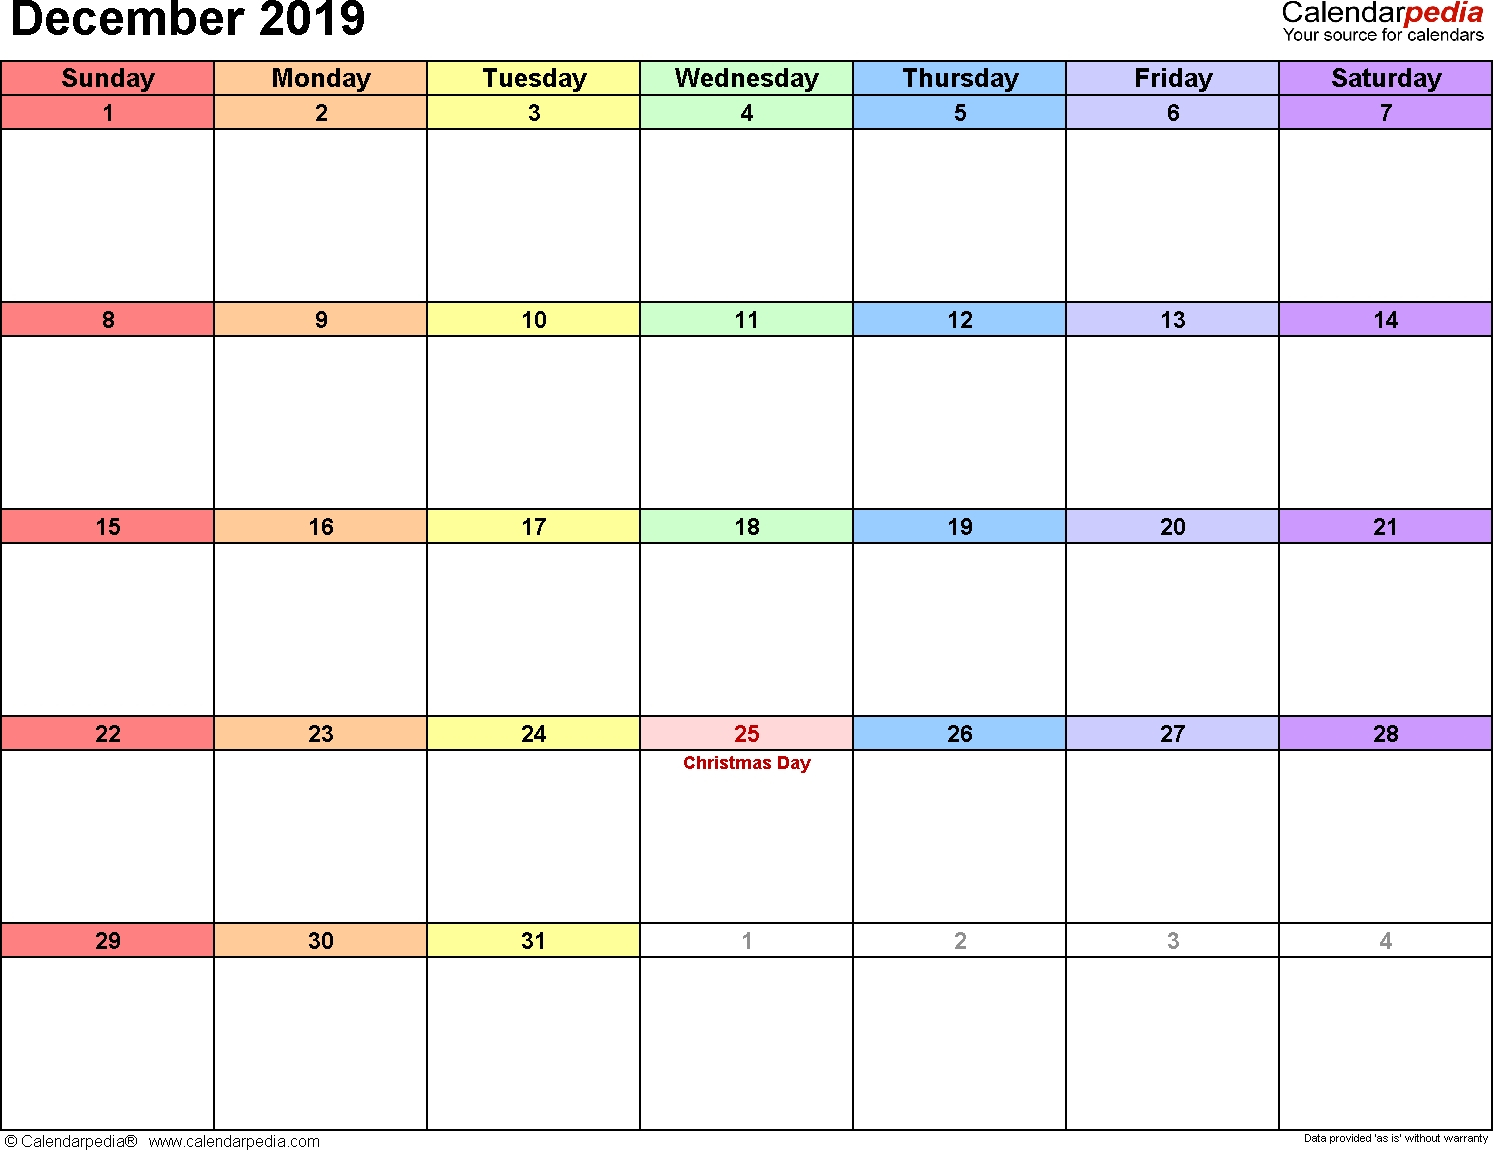 December 2019 Calendars For Word, Excel & Pdf – Example with Depo Provera Calendar Printable Pdf